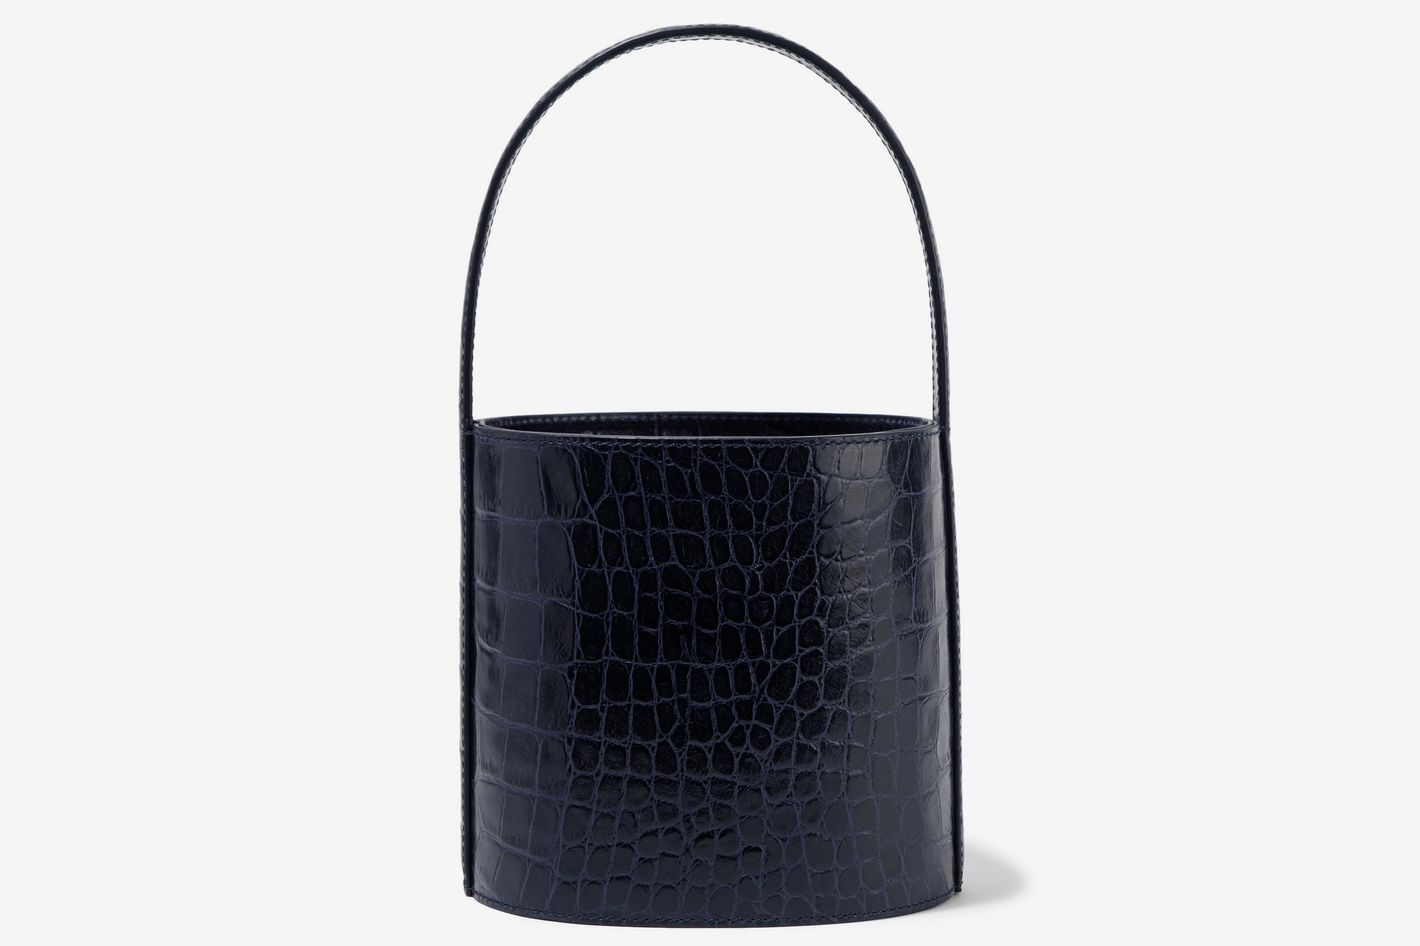 The Biggest Handbag Trend For Spring 2018 Sling Bag Santai A25 Staud Croc Effect Tote